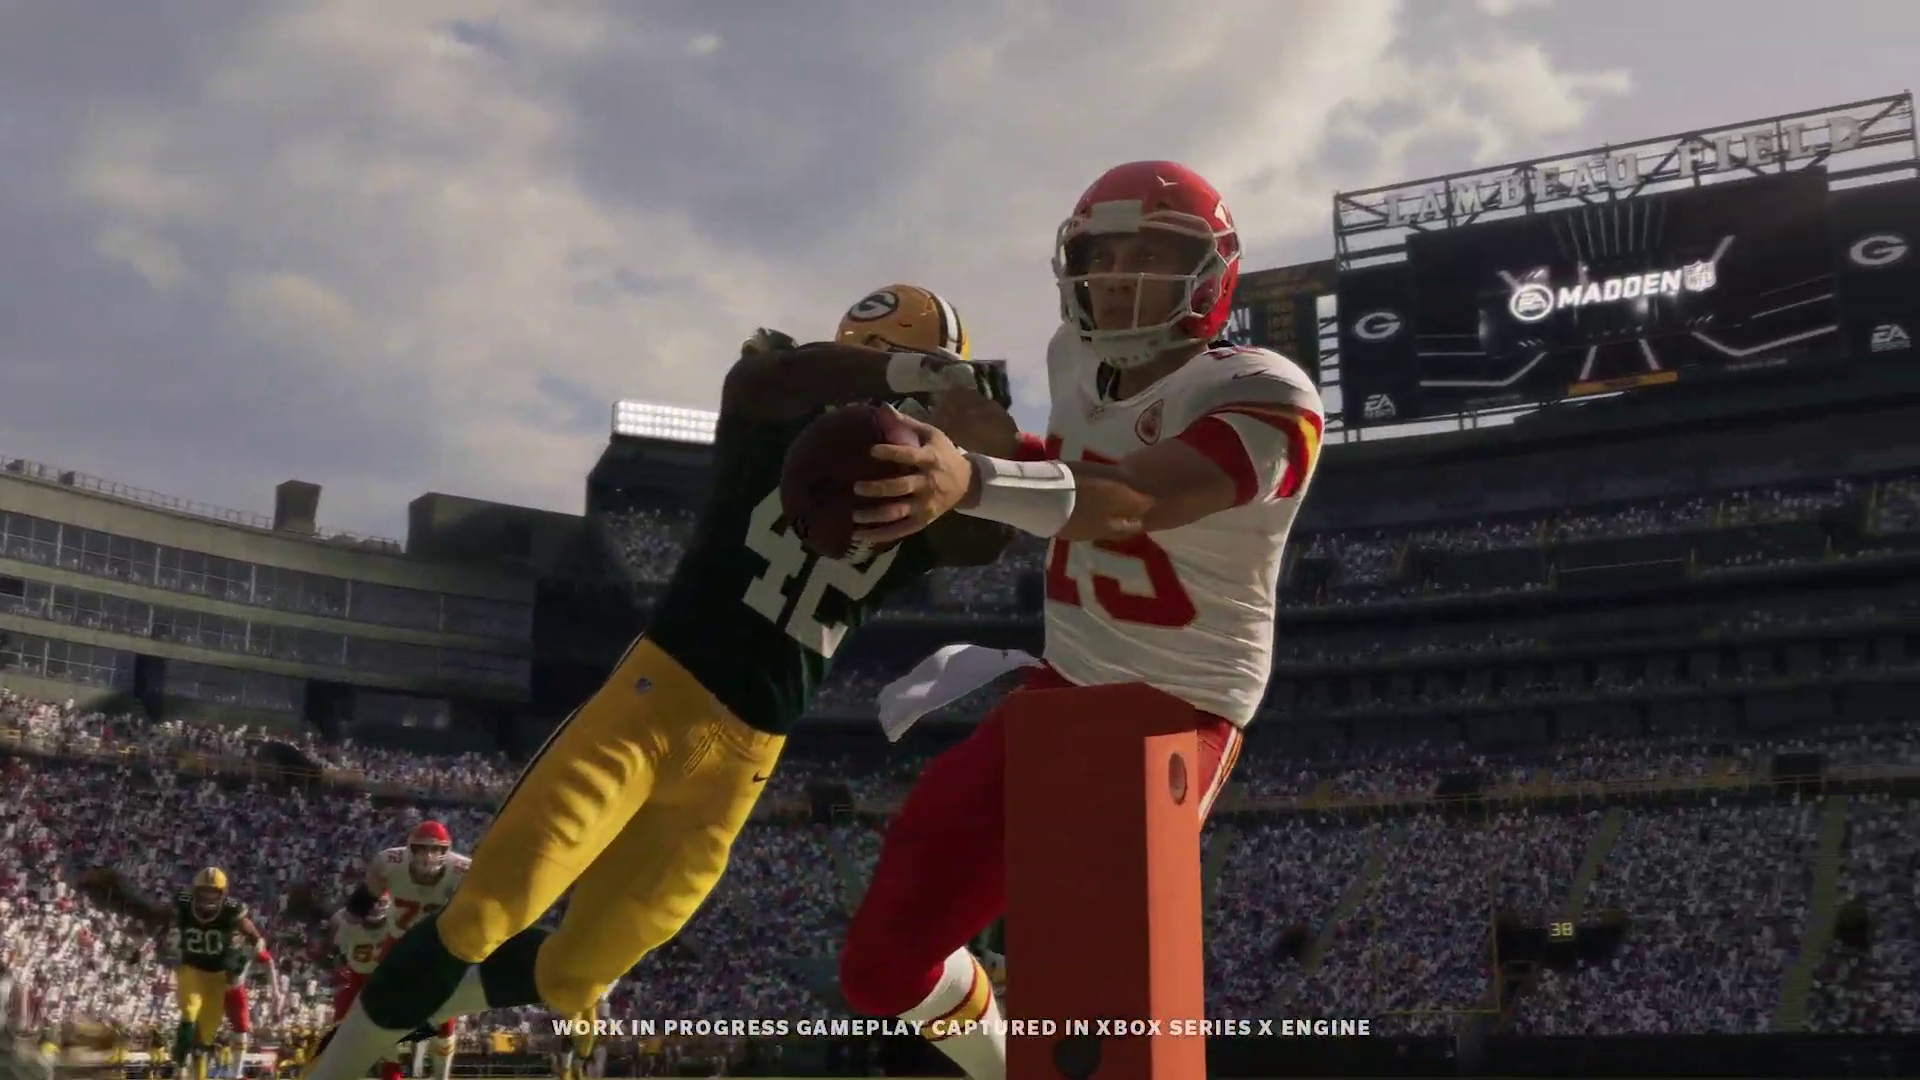 the Chiefs' Patrick Mahomes carries the ball over the pylon while getting tackled in Madden NFL 21